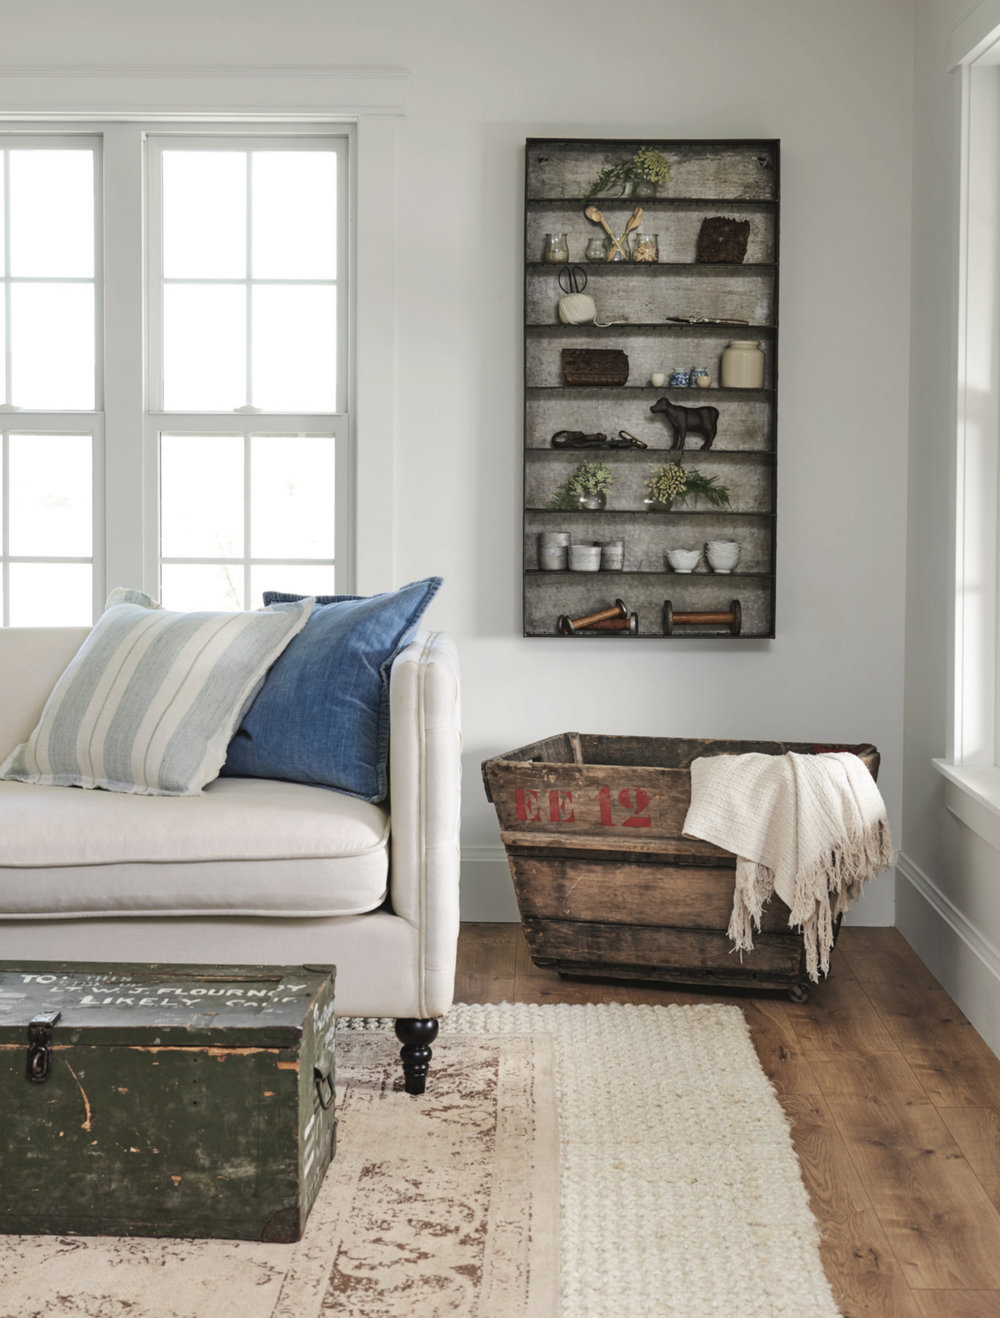 Farmhouse+living+room+with+metal+spice+shelf+wall+art+and+vintage+army+trunk+coffee+table+with+tufted+couches+and+vintage+champagne+crate+ +#farmhousestyle+#farmhouse copy.jpg